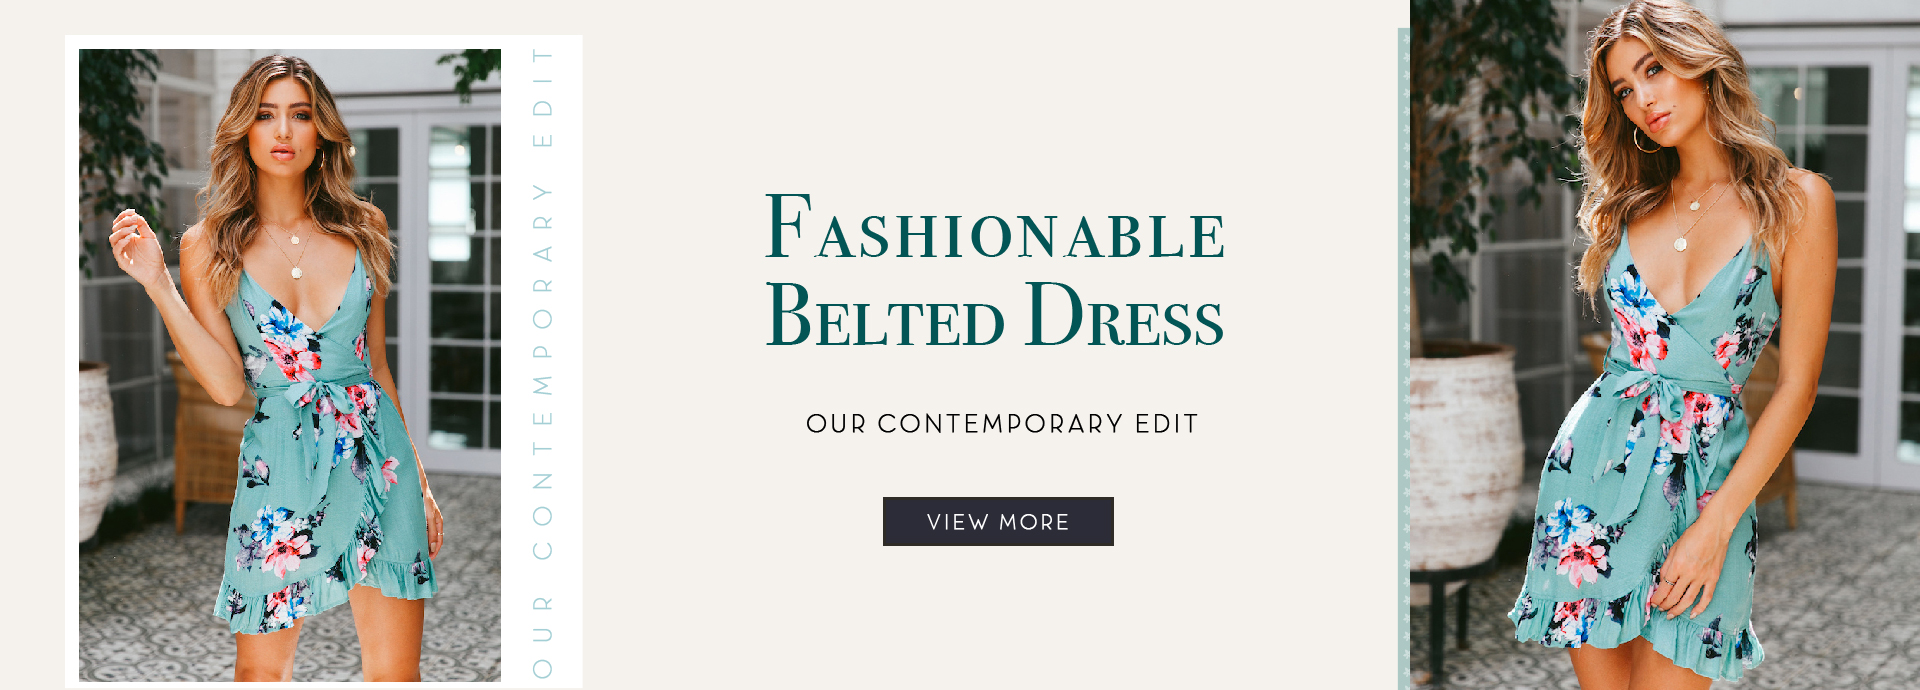 Fashionable Belted Dress